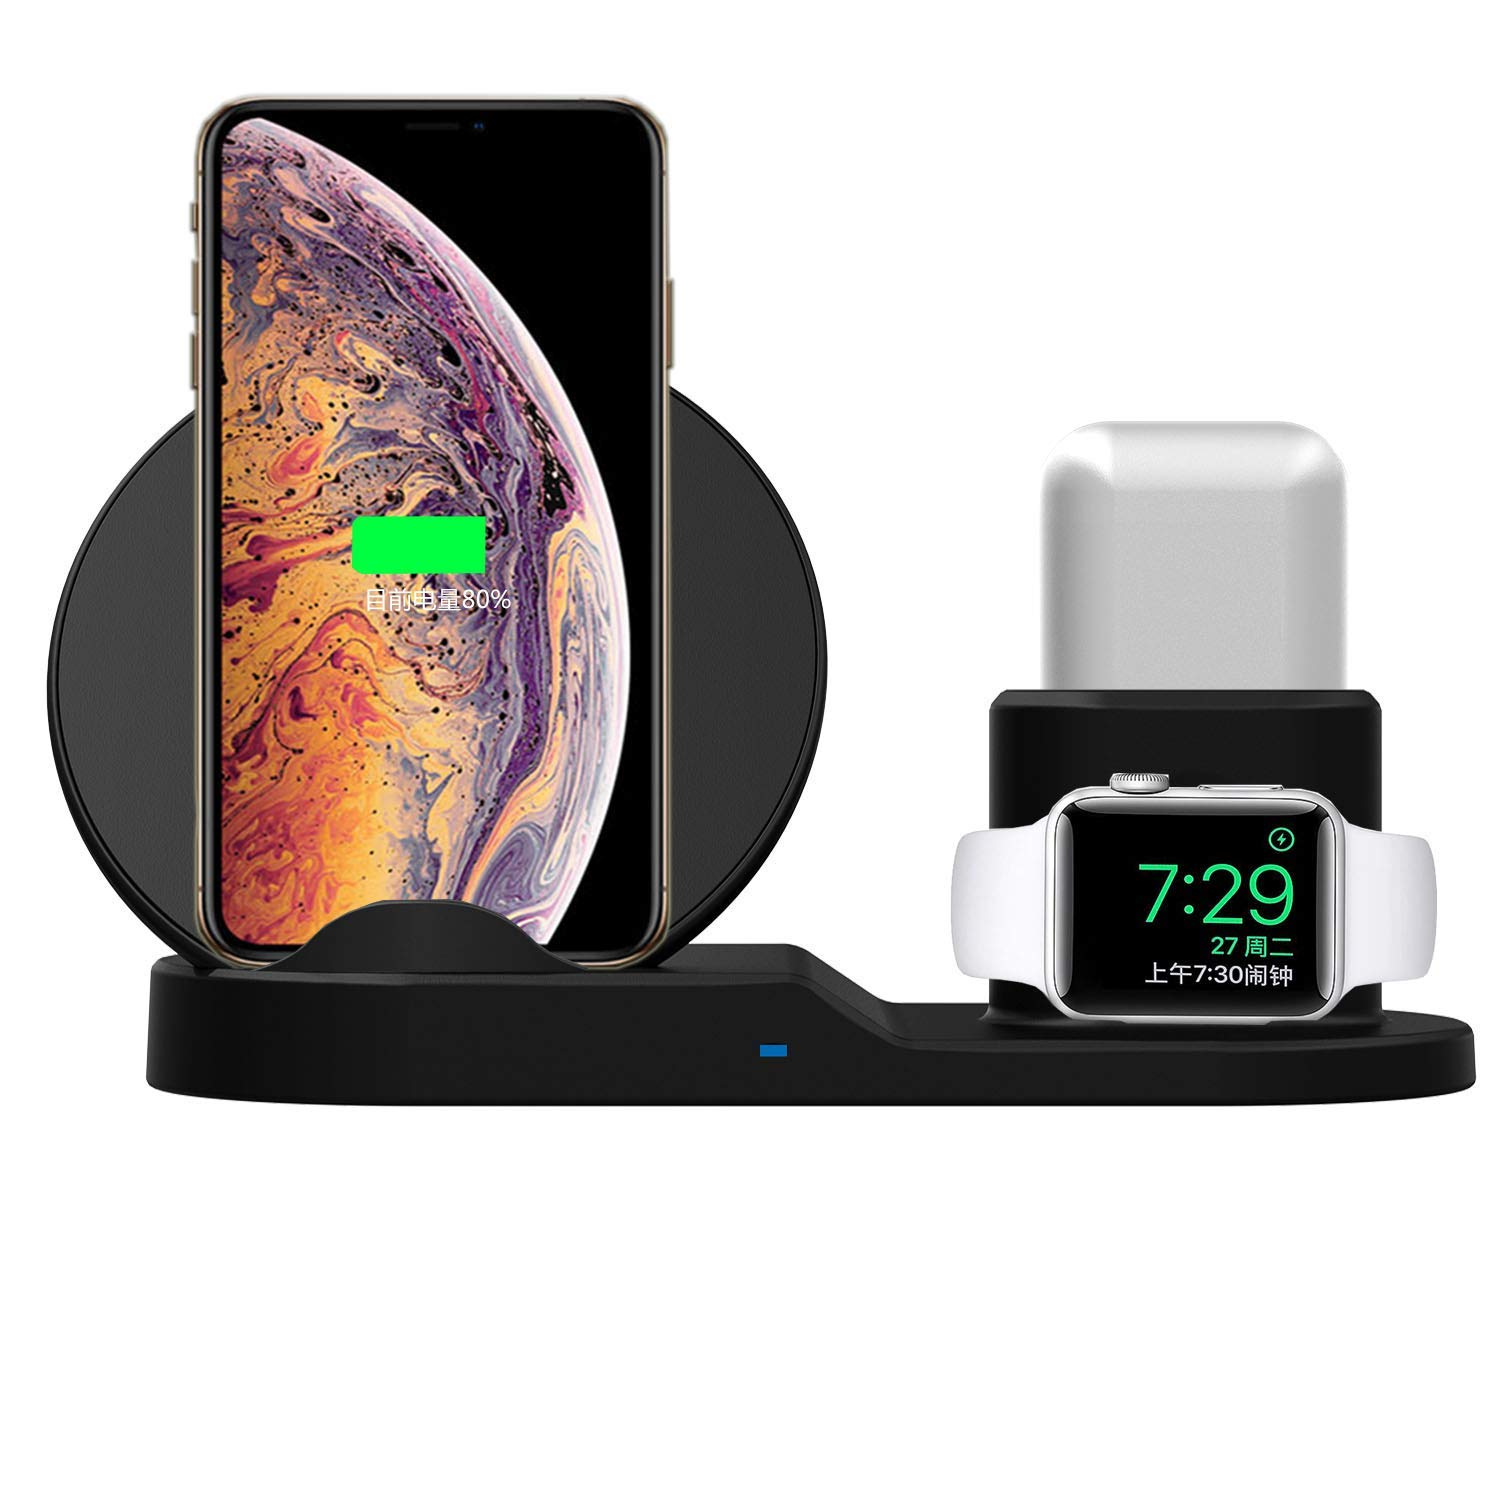 TOOBOSS Wireless Charging Pad 3 in 1,Wireless Charging Stand Compatible with iPhone X/Xs Max/XR/Samsung S10 /S9+/Note 8,Wireless Charging Station Compatible with iwatch Series 1/2/3/4 +Airpods by TOOBOSS